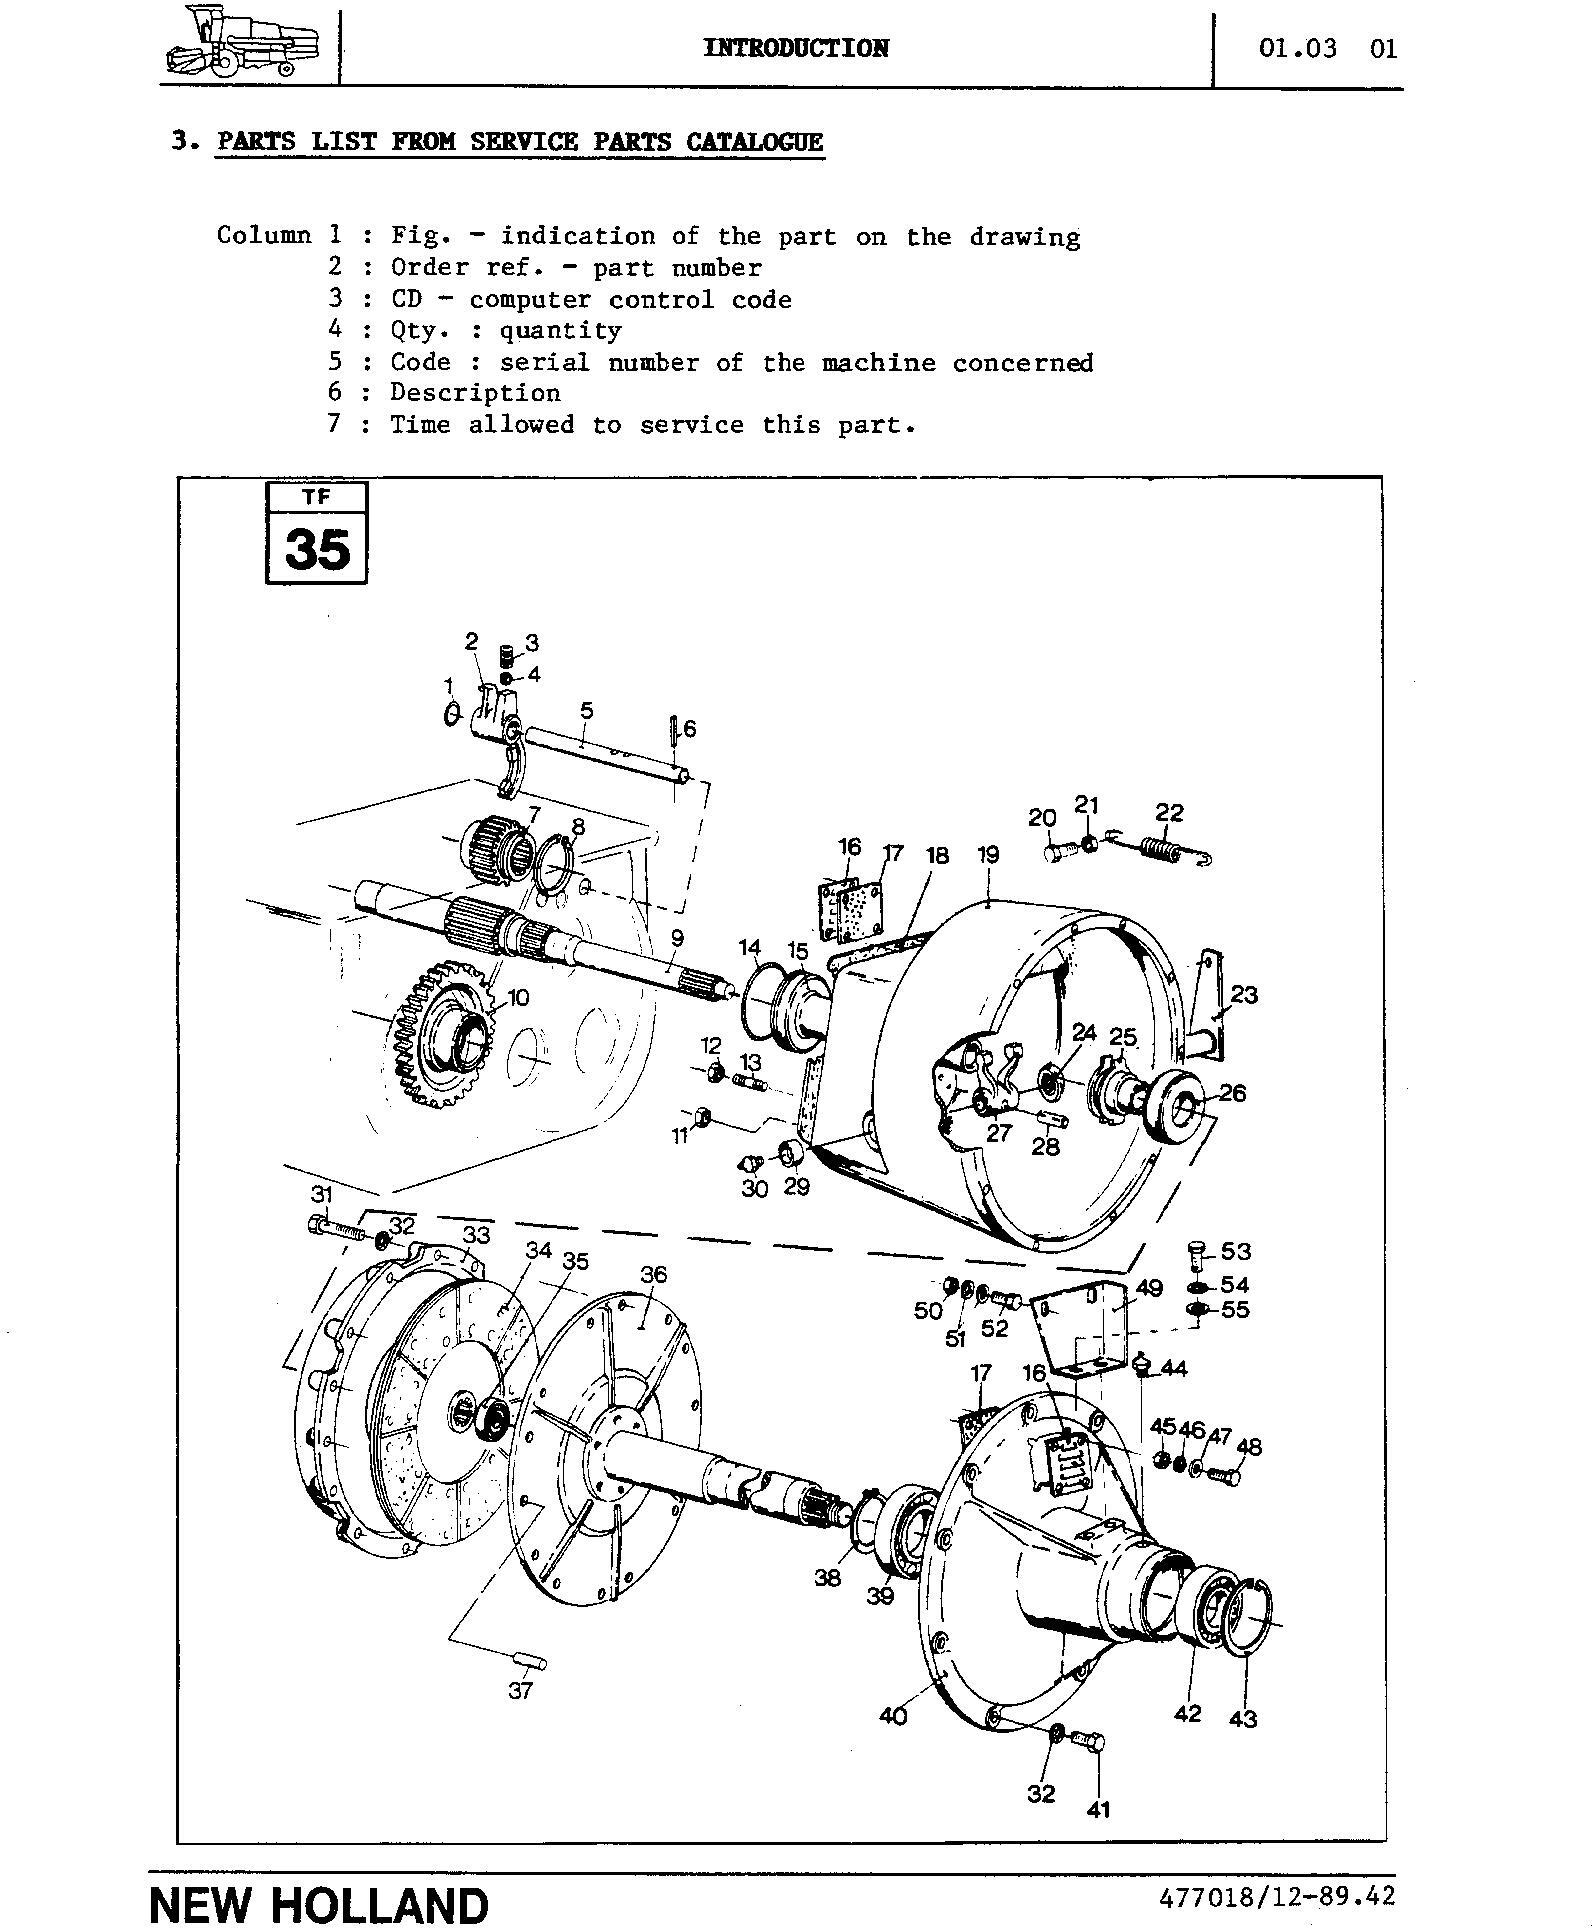 New Holland TX36, TX66, TX68 Combines (for TX66&TX68 Mechanical Info only) Service Manual - 1